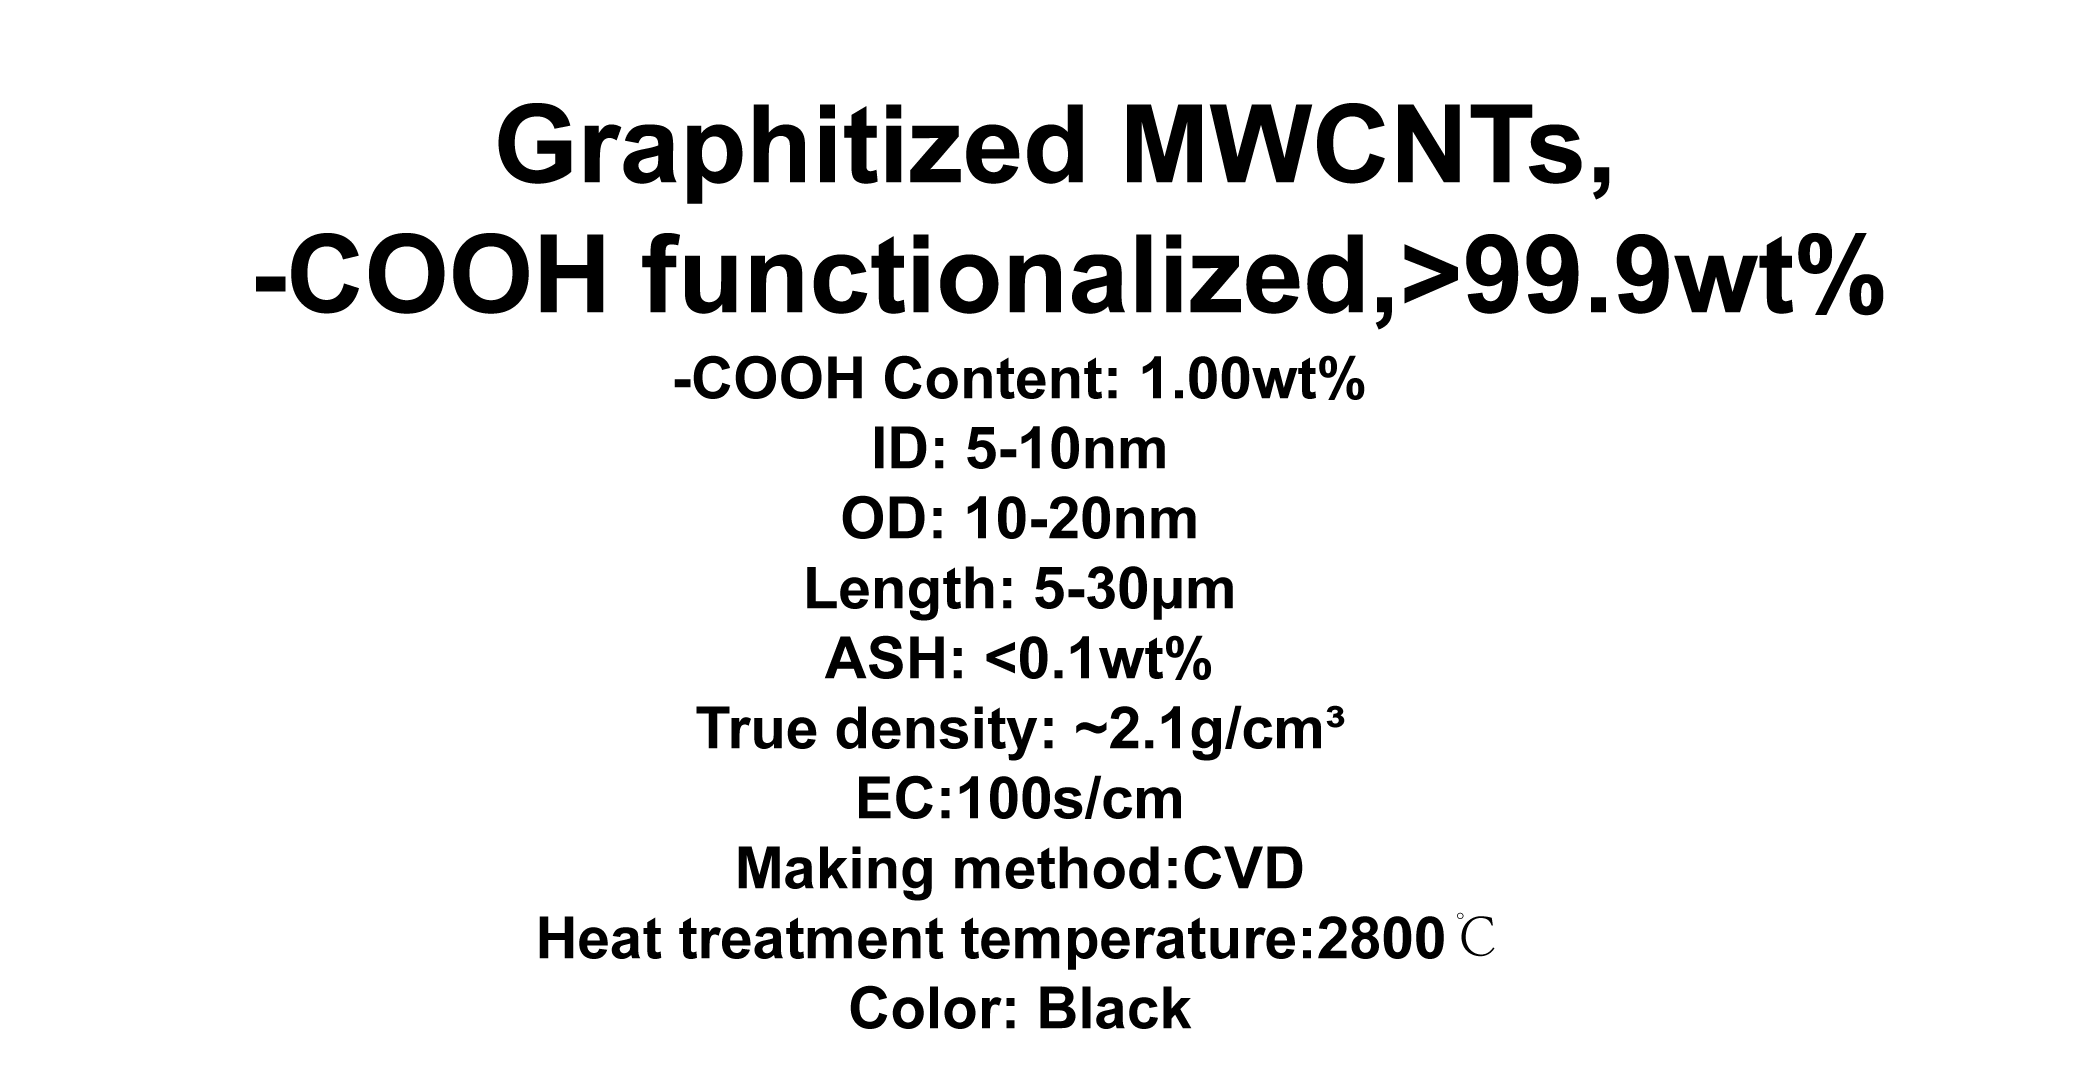 Graphitized MWCNTs, -COOH functionalized (TNGMC3)